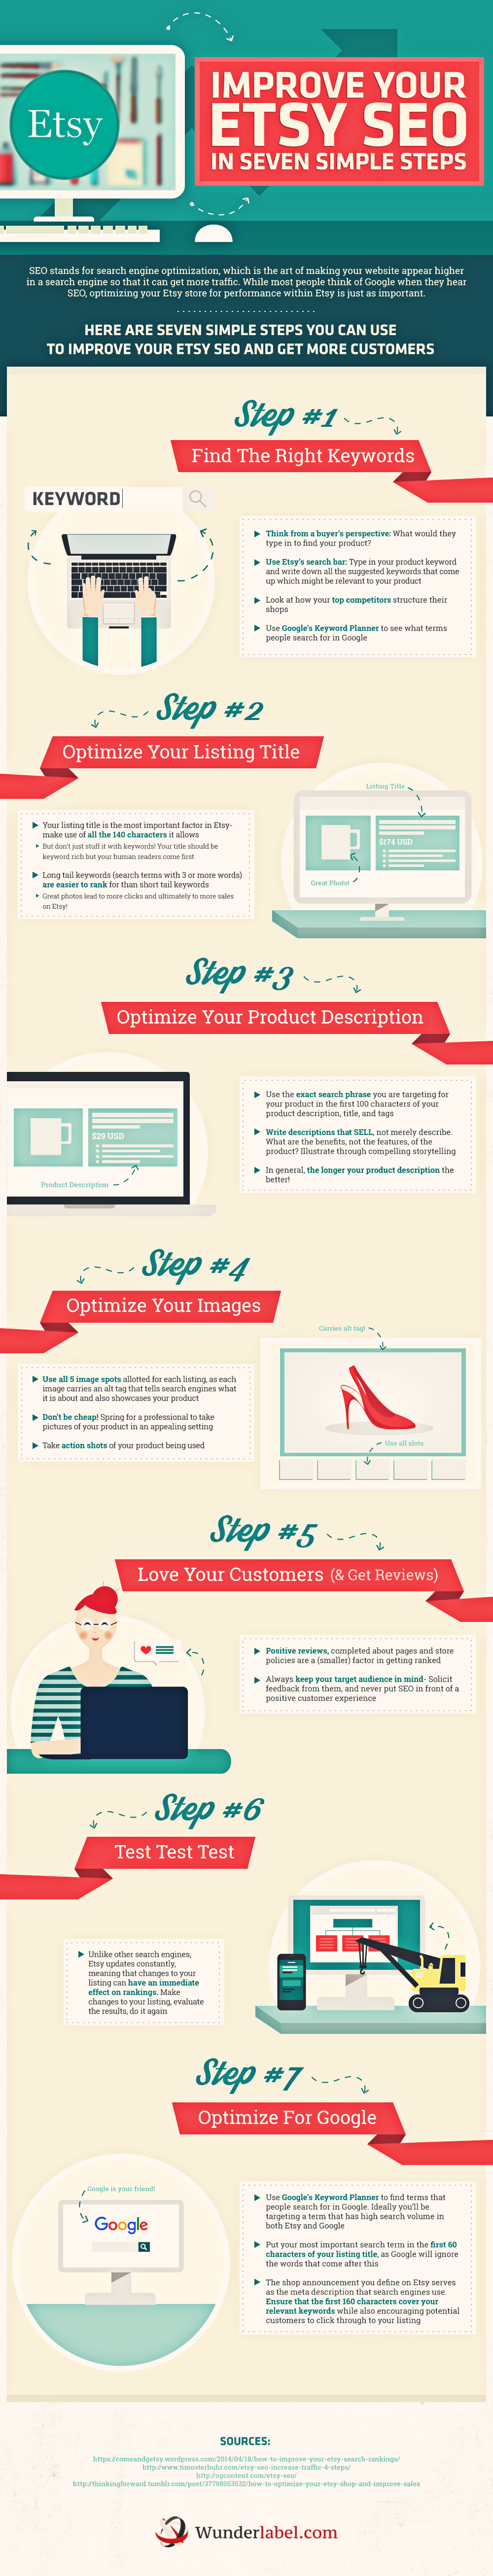 Improve your Etsy SEO #Infographic